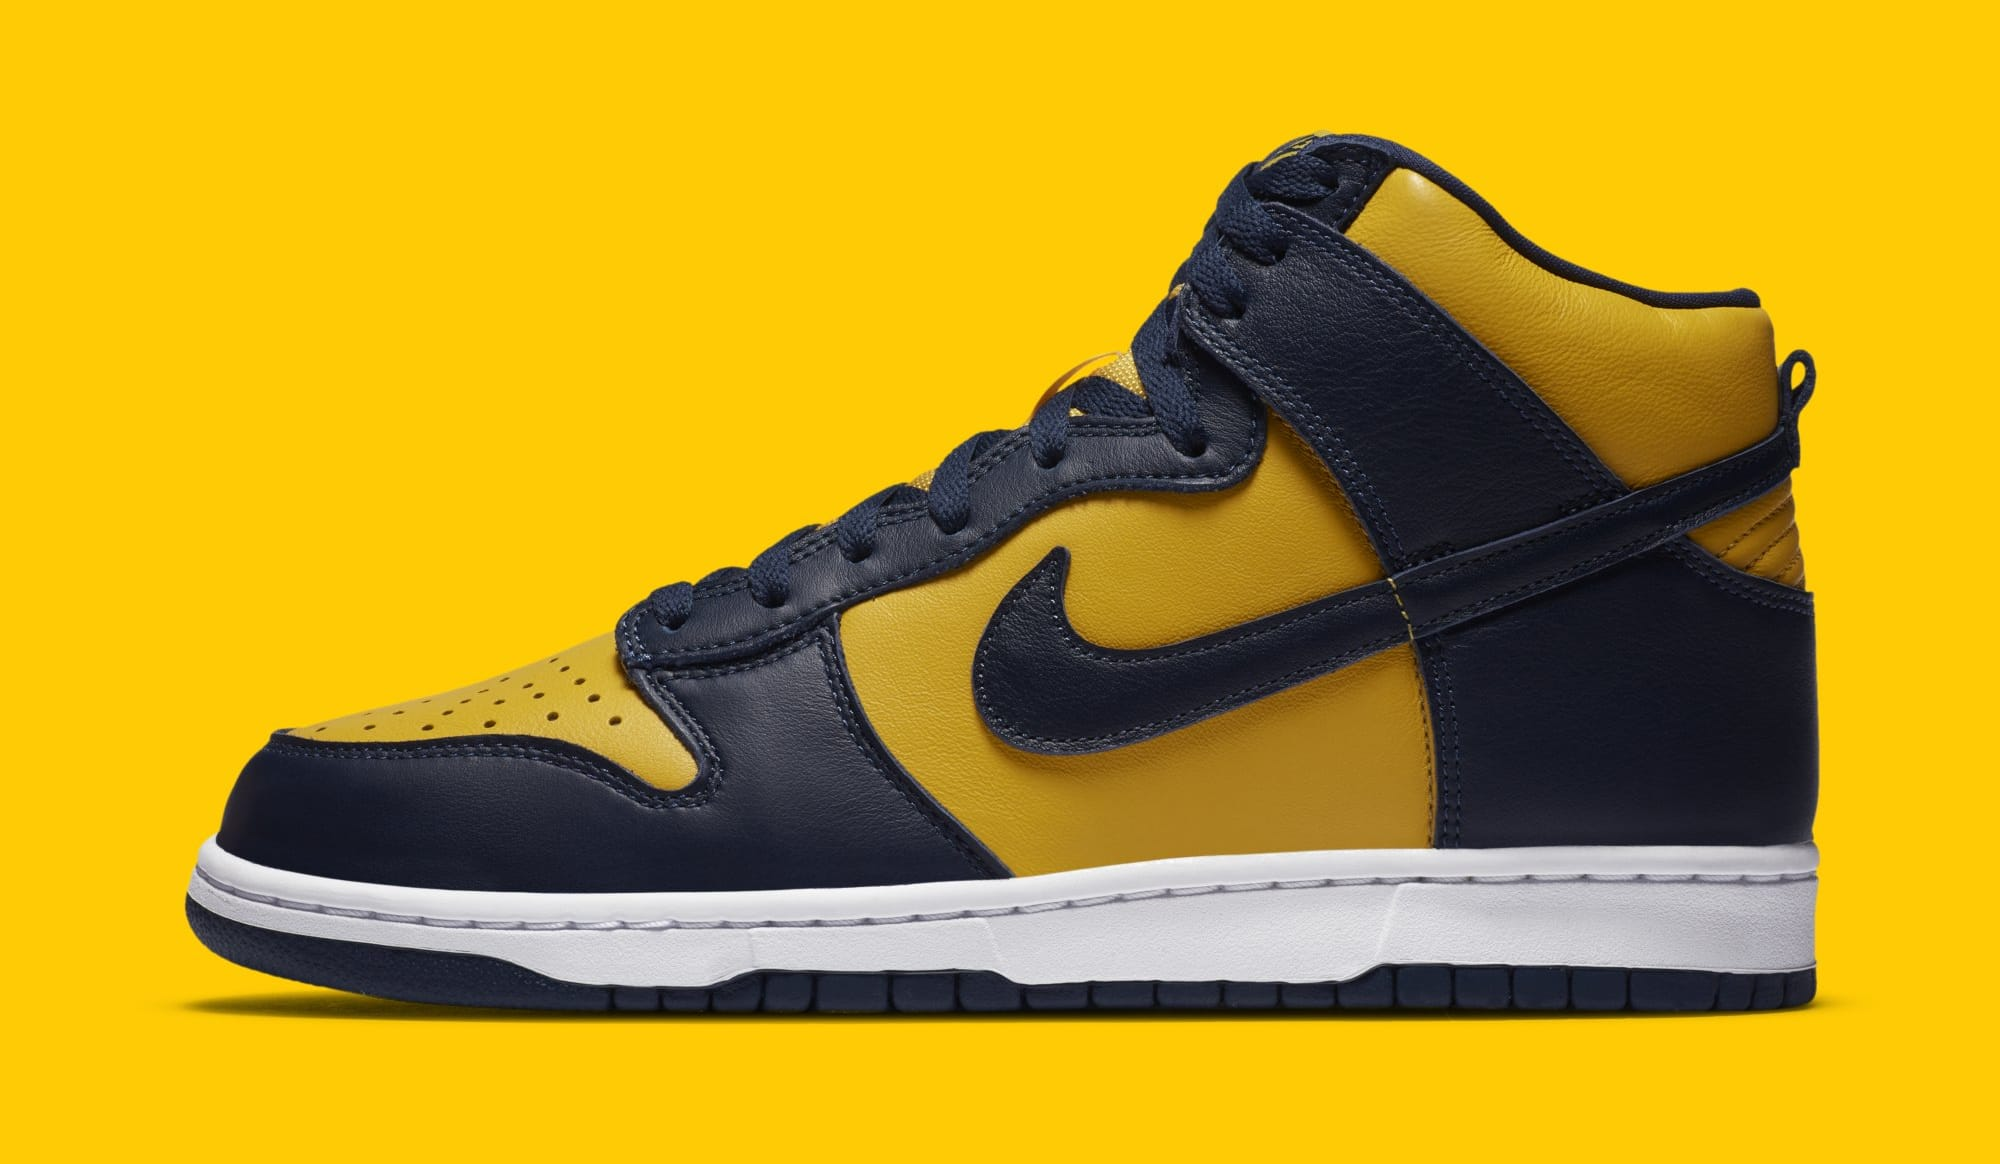 Nike Dunk High SP 'Michigan' CZ8149-700 Lateral